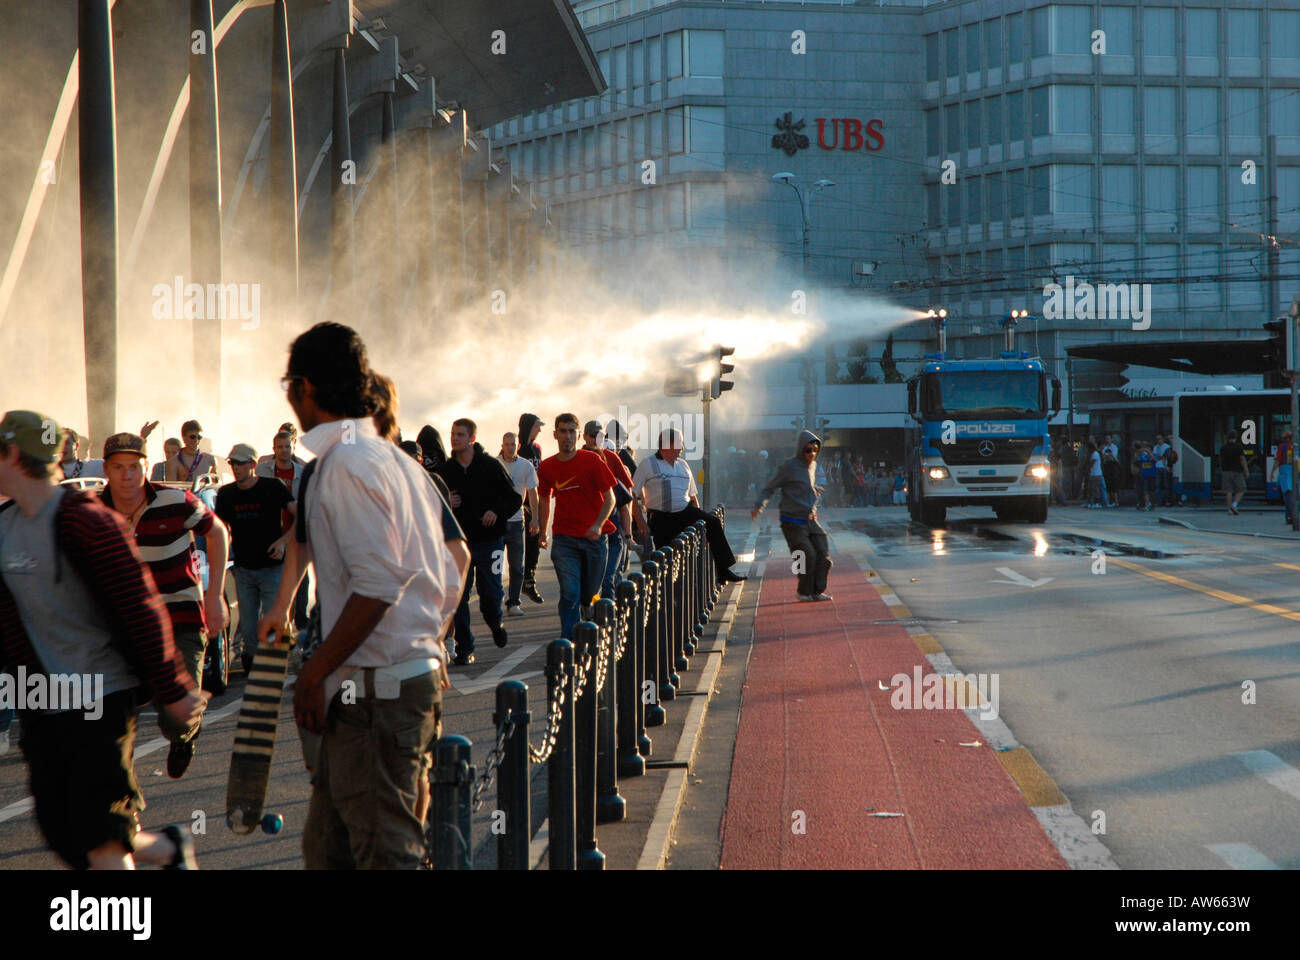 Hooligans an a police car using a water cannon - Stock Image